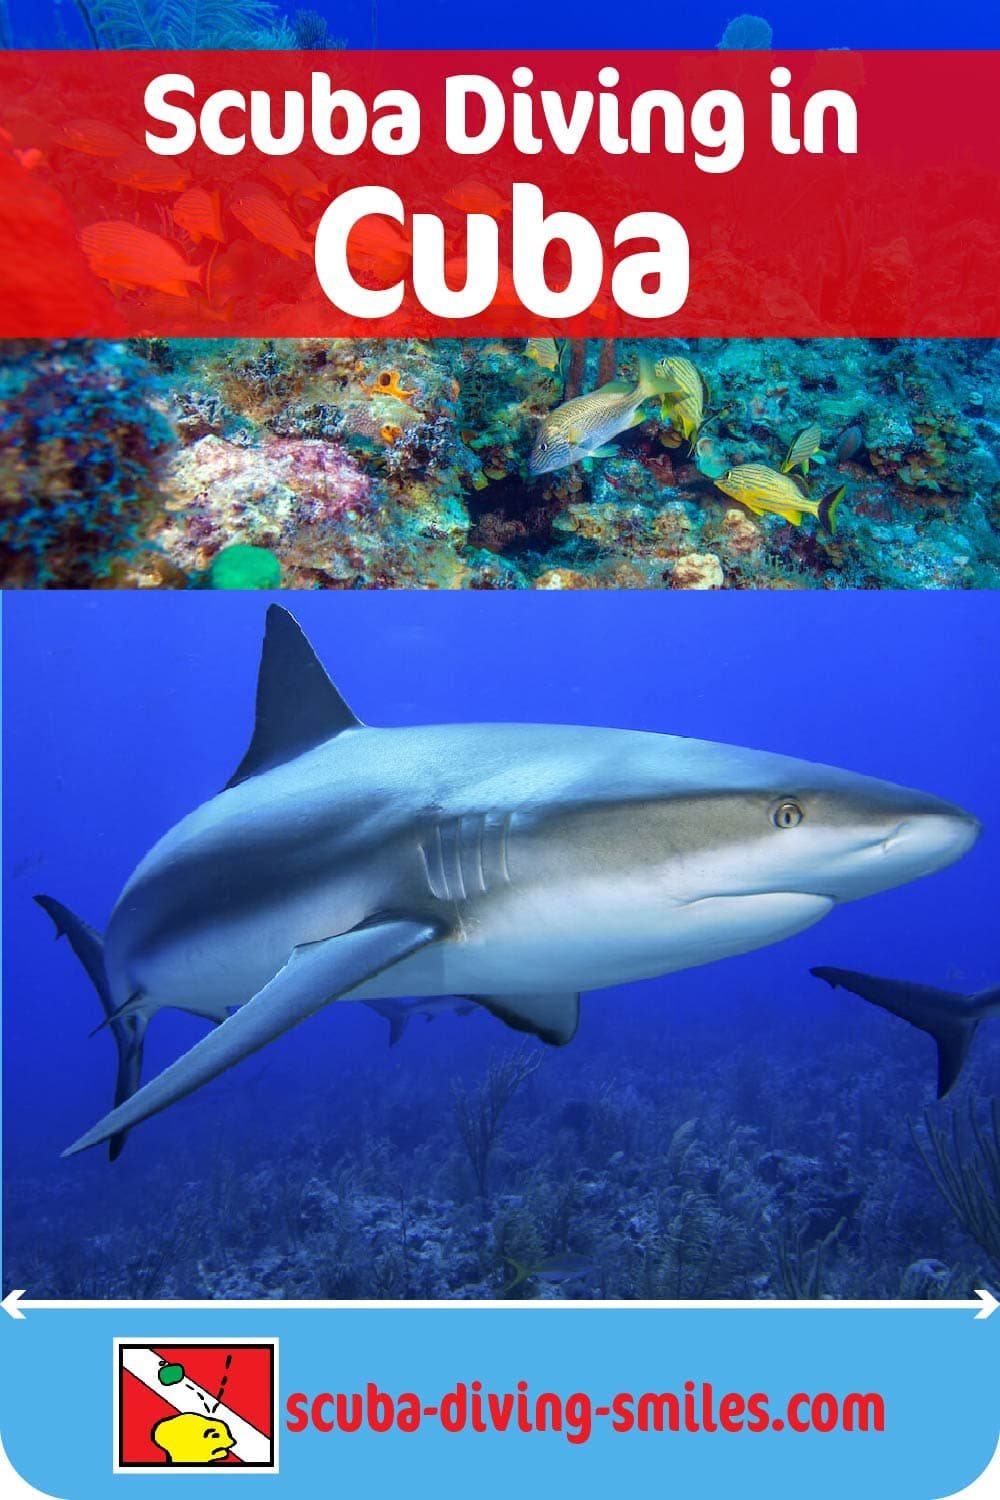 scuba diving in cuba with sharks